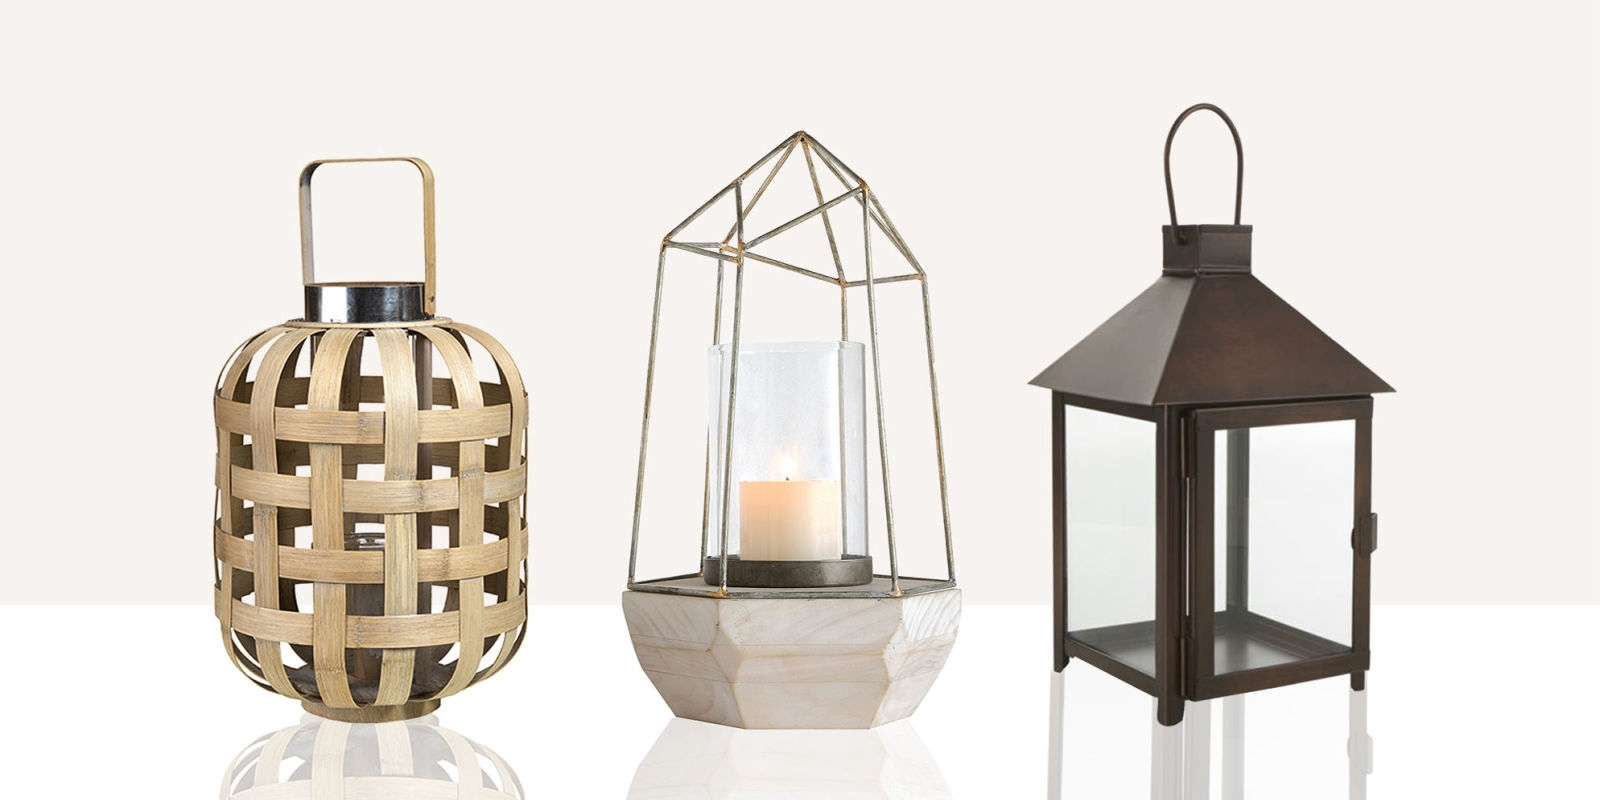 Lighting: Brighten Up Your Space With Stunning Candle Lanterns Throughout Outdoor Mosaic Lanterns (View 9 of 20)